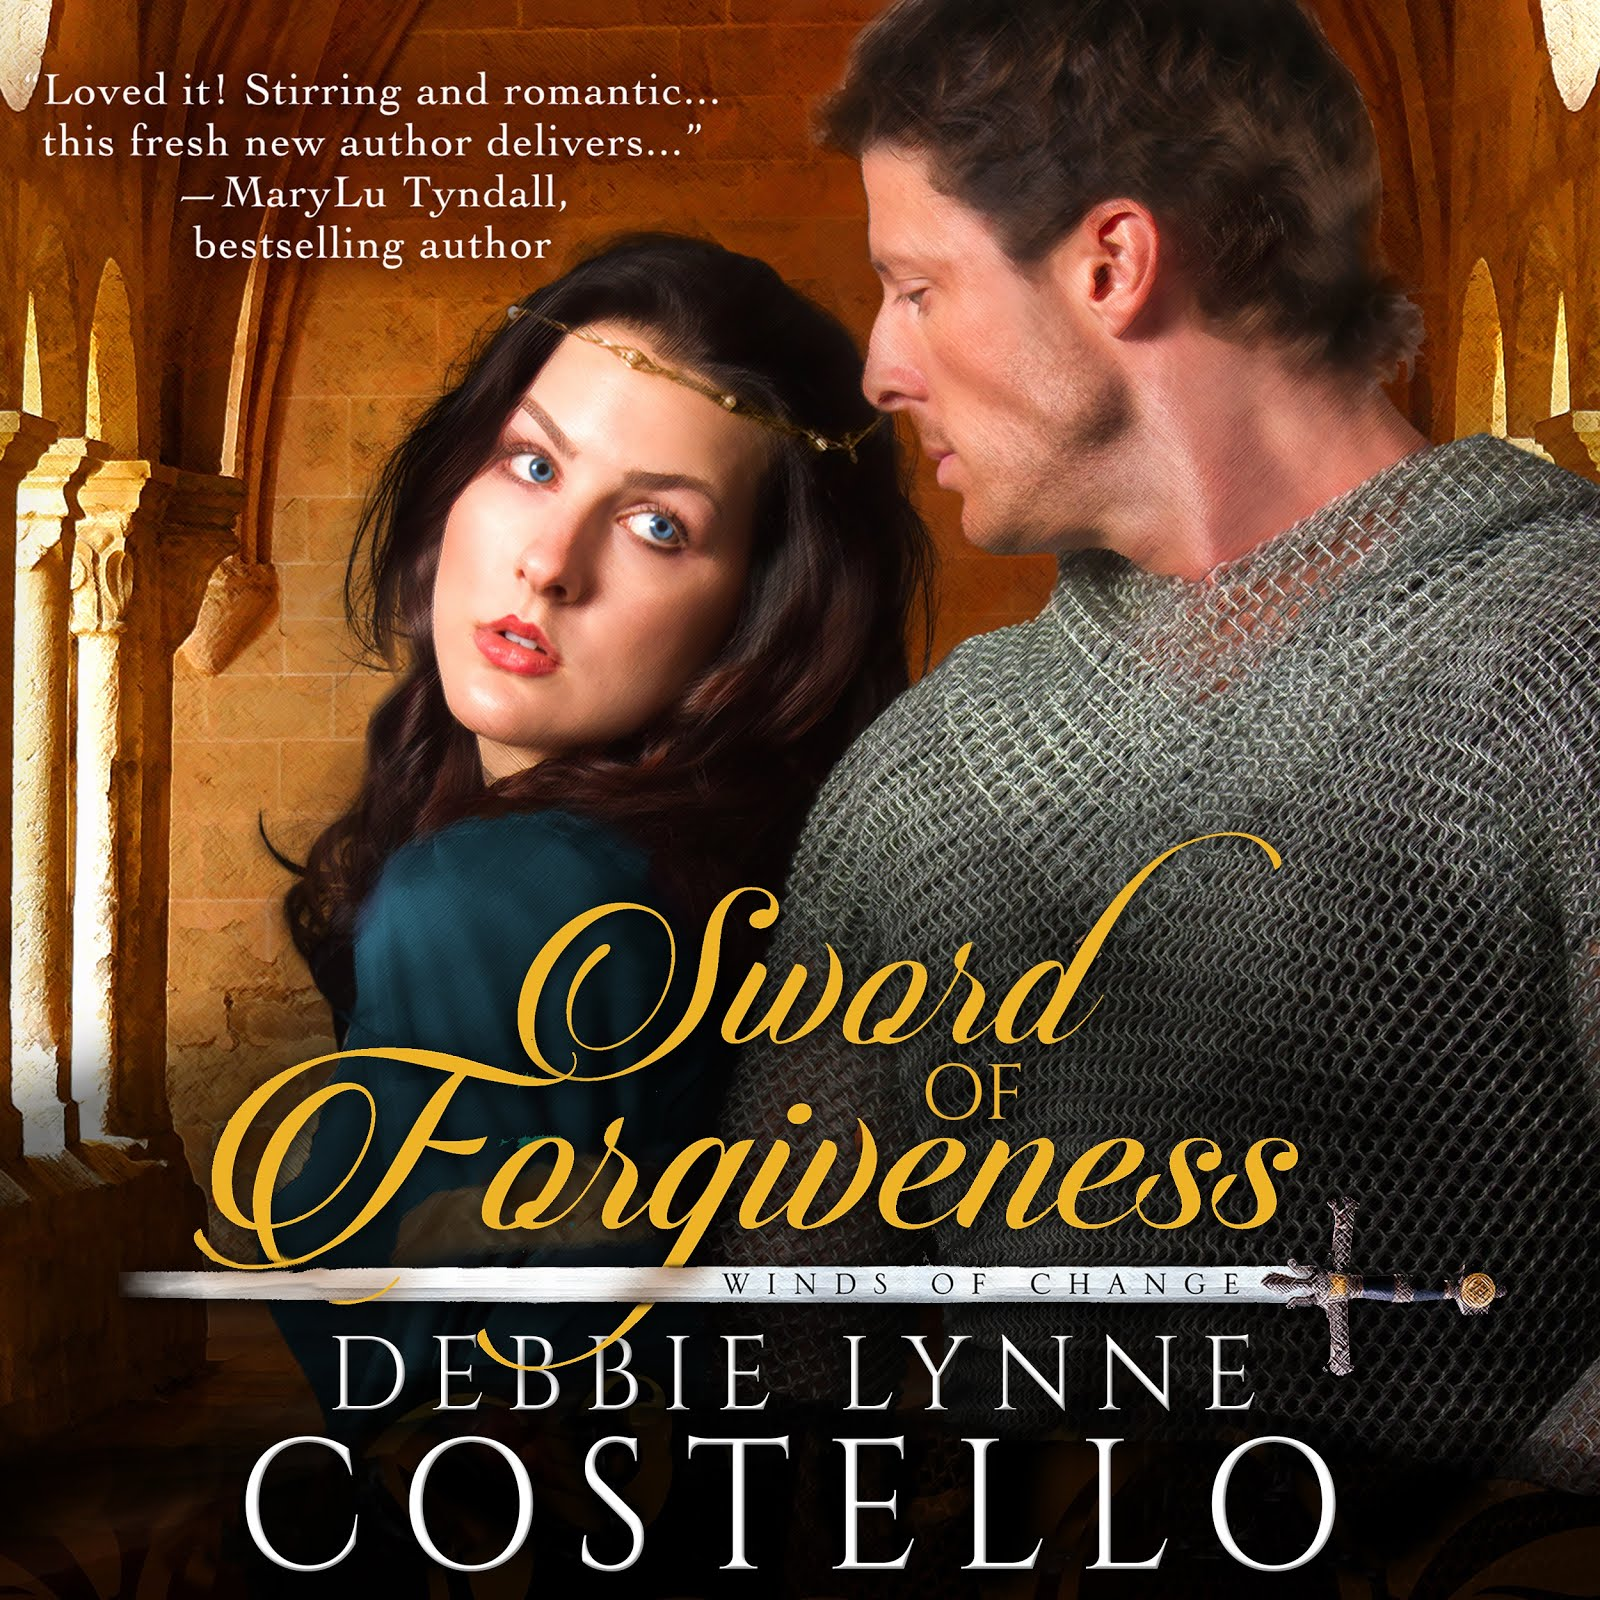 Sword of Forgiveness is now available on Audio